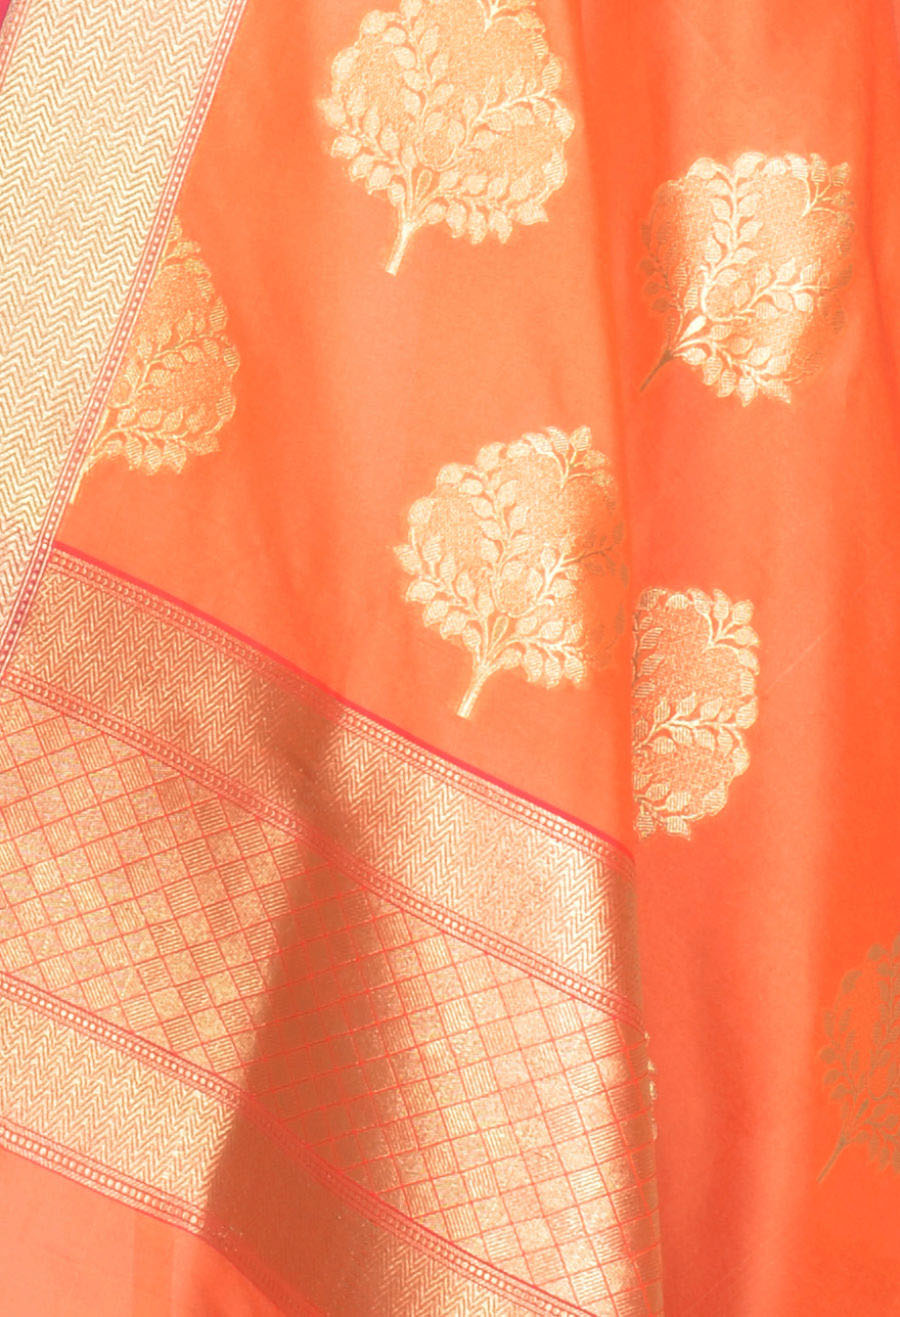 Peach Banarasi dupatta with tree boota in gold (2) Close up